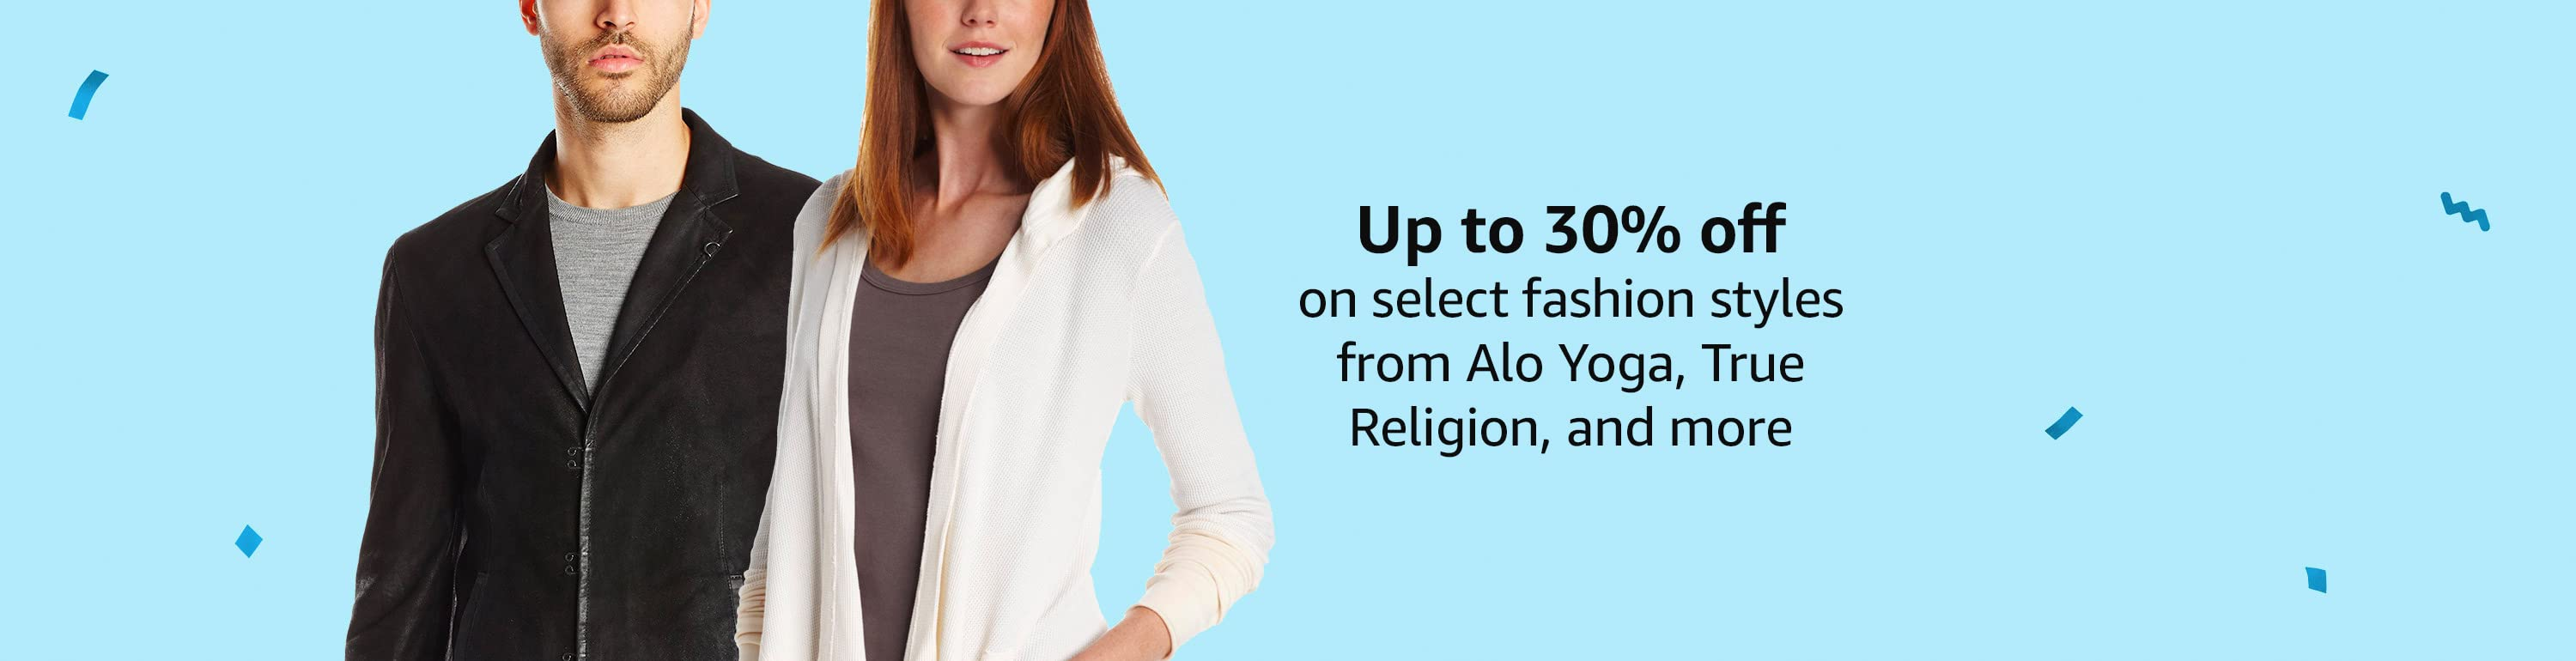 Up to 30% off on select styles from Badgley Mischka, True Religion and more